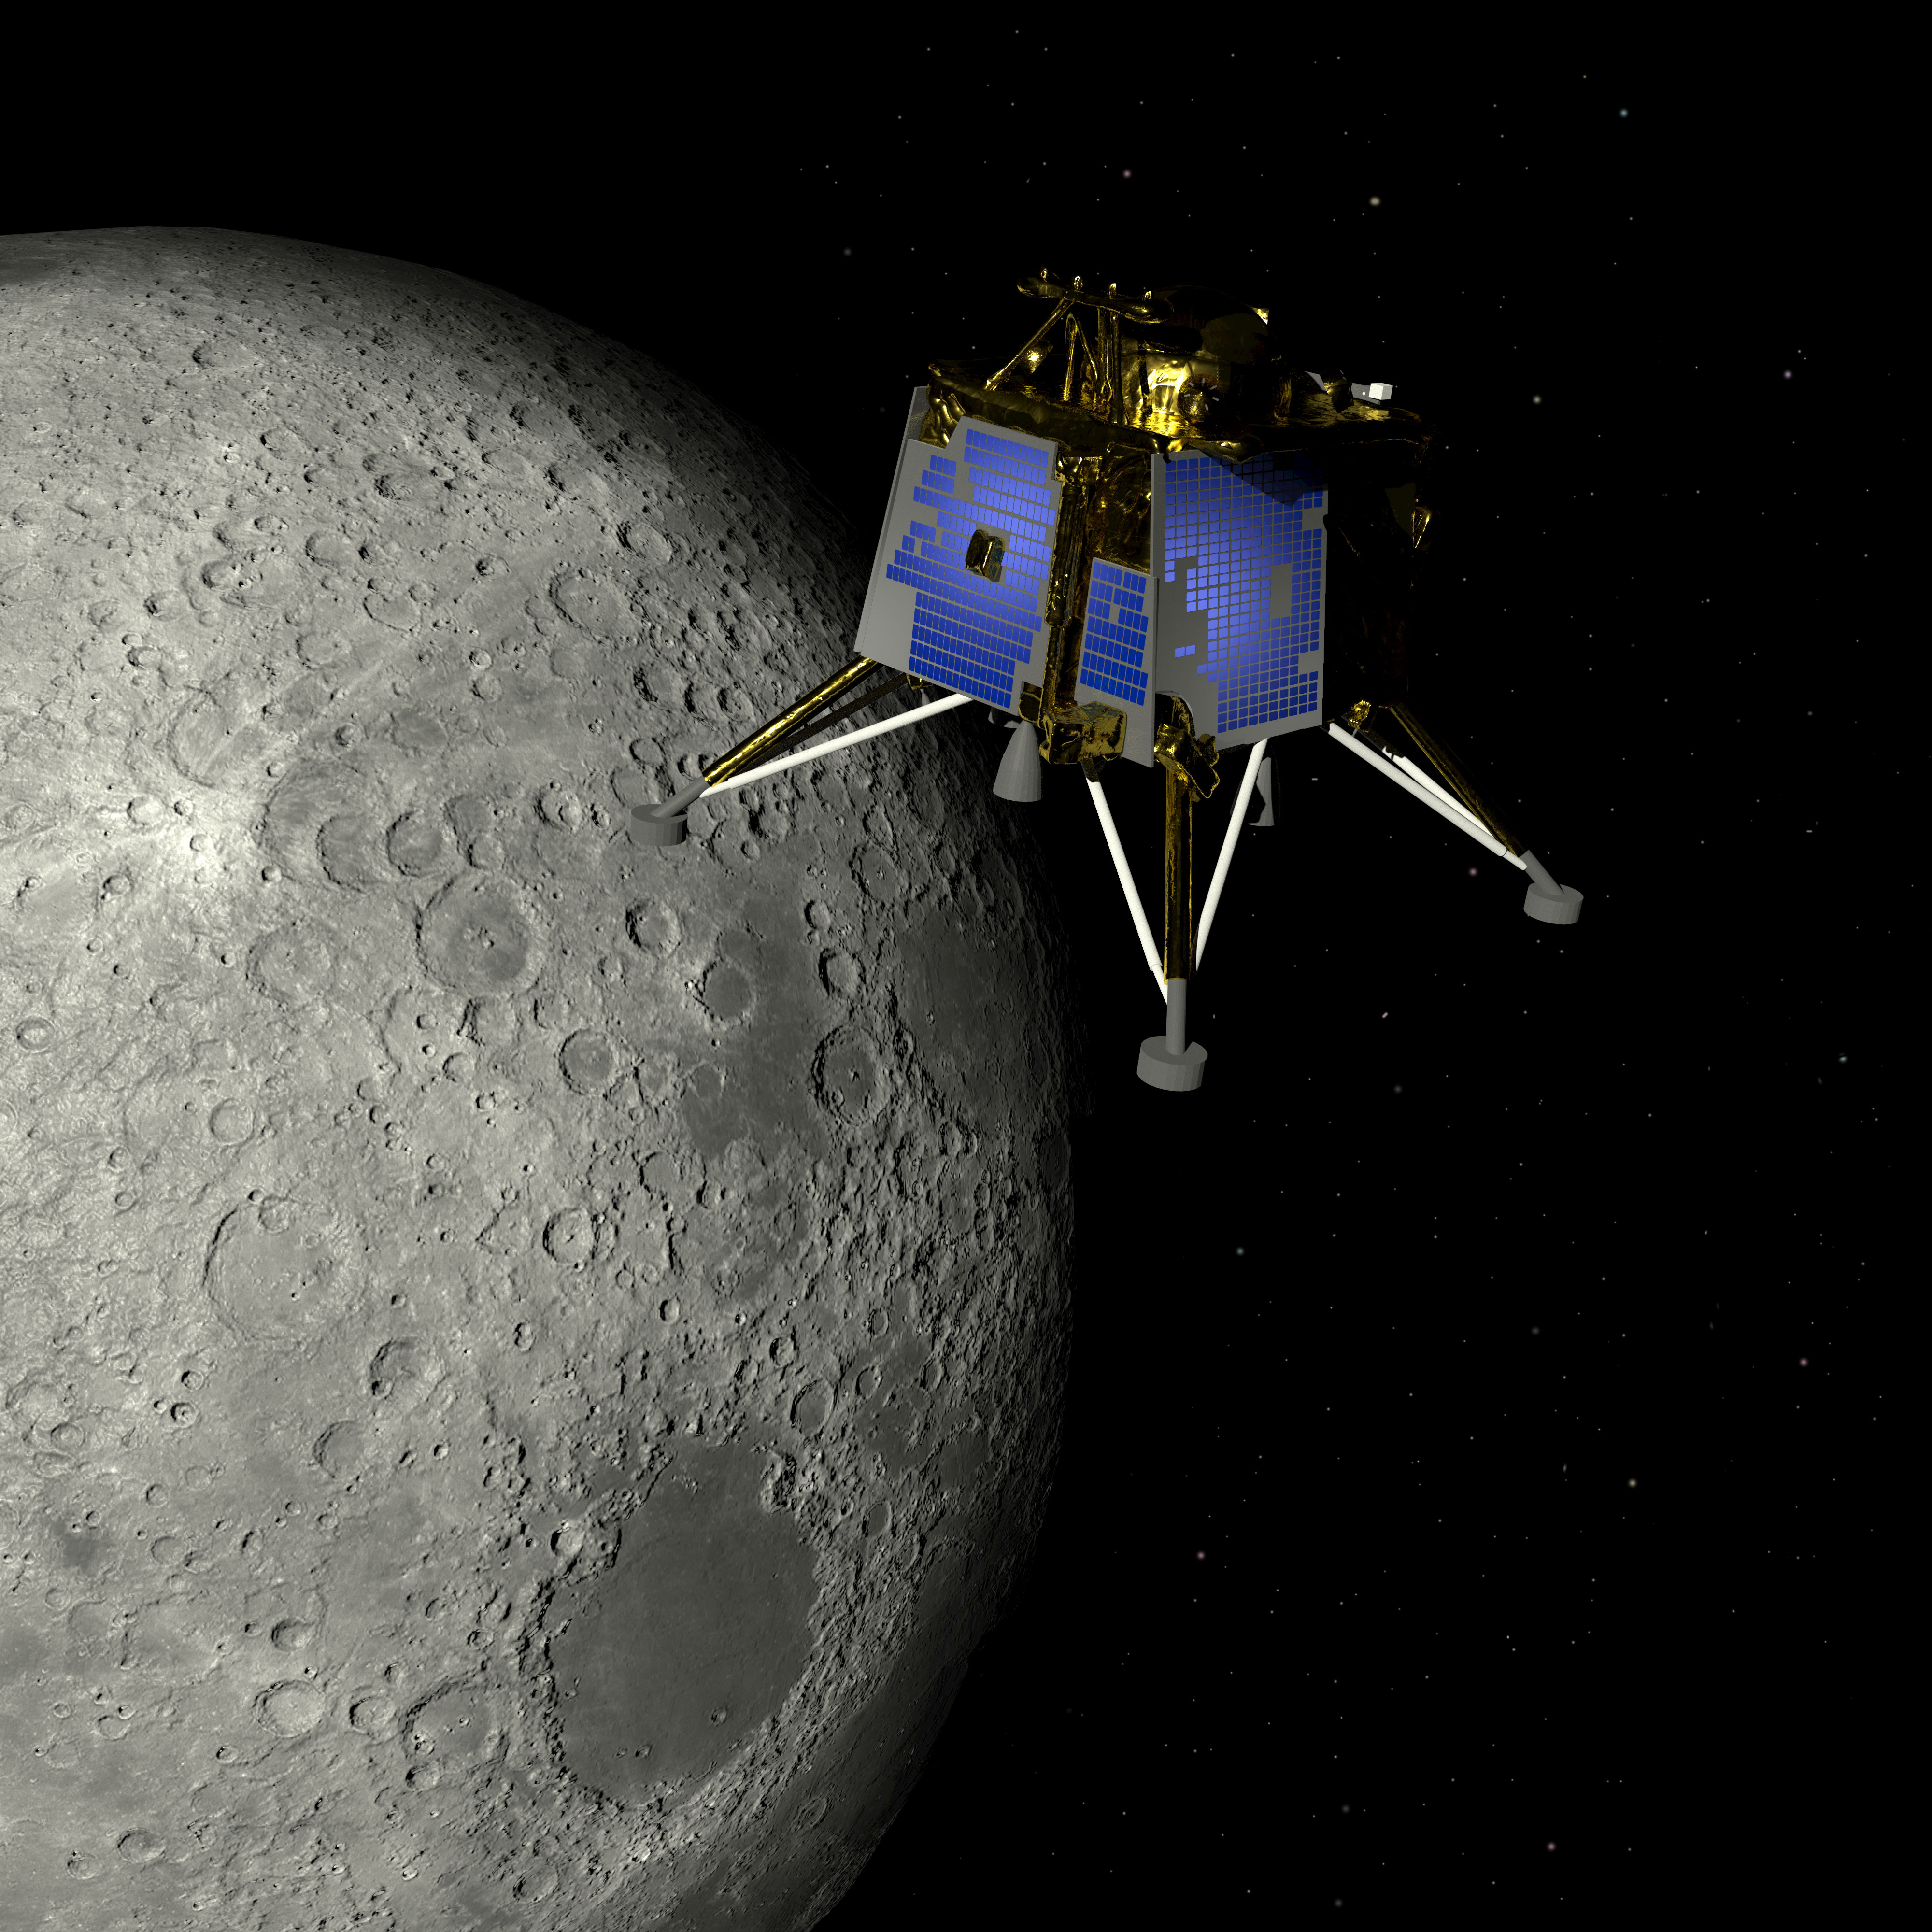 Chandrayaan-2's orbiter CLASS detects charged particles on the moon